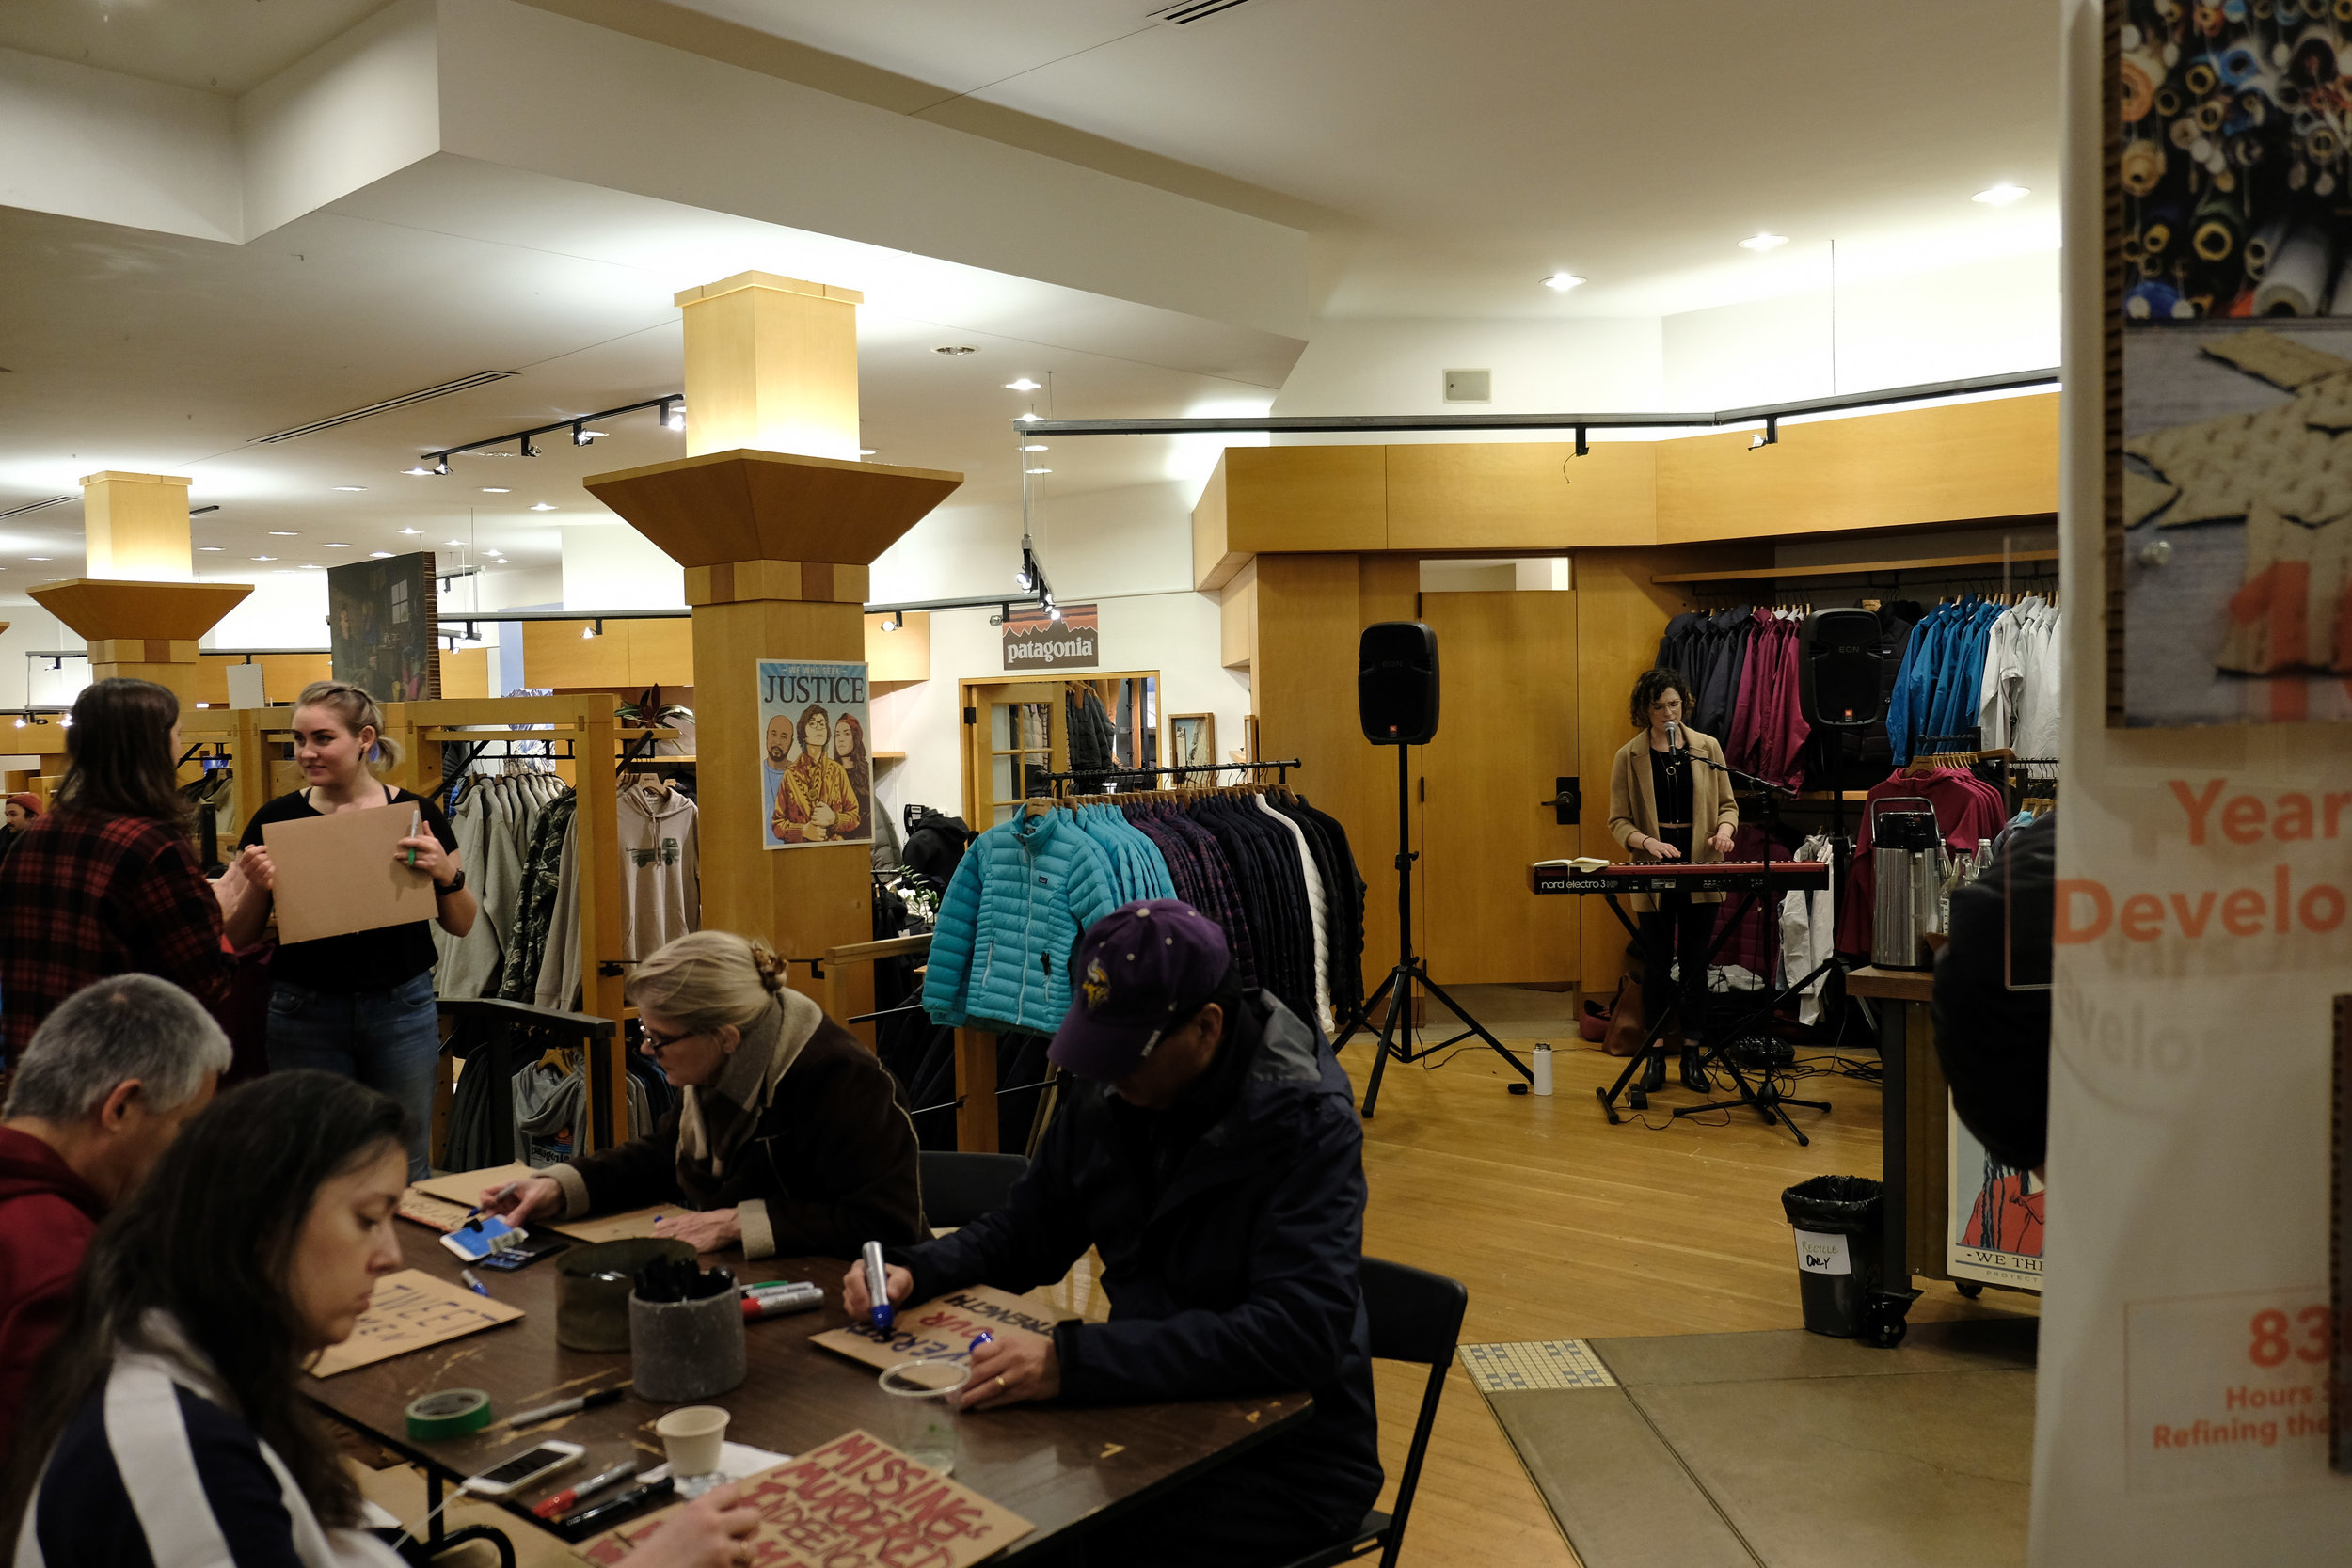 Seattle musician Katie Kuffel performs at Patagonia's sign-making event for the Women's March 2018.